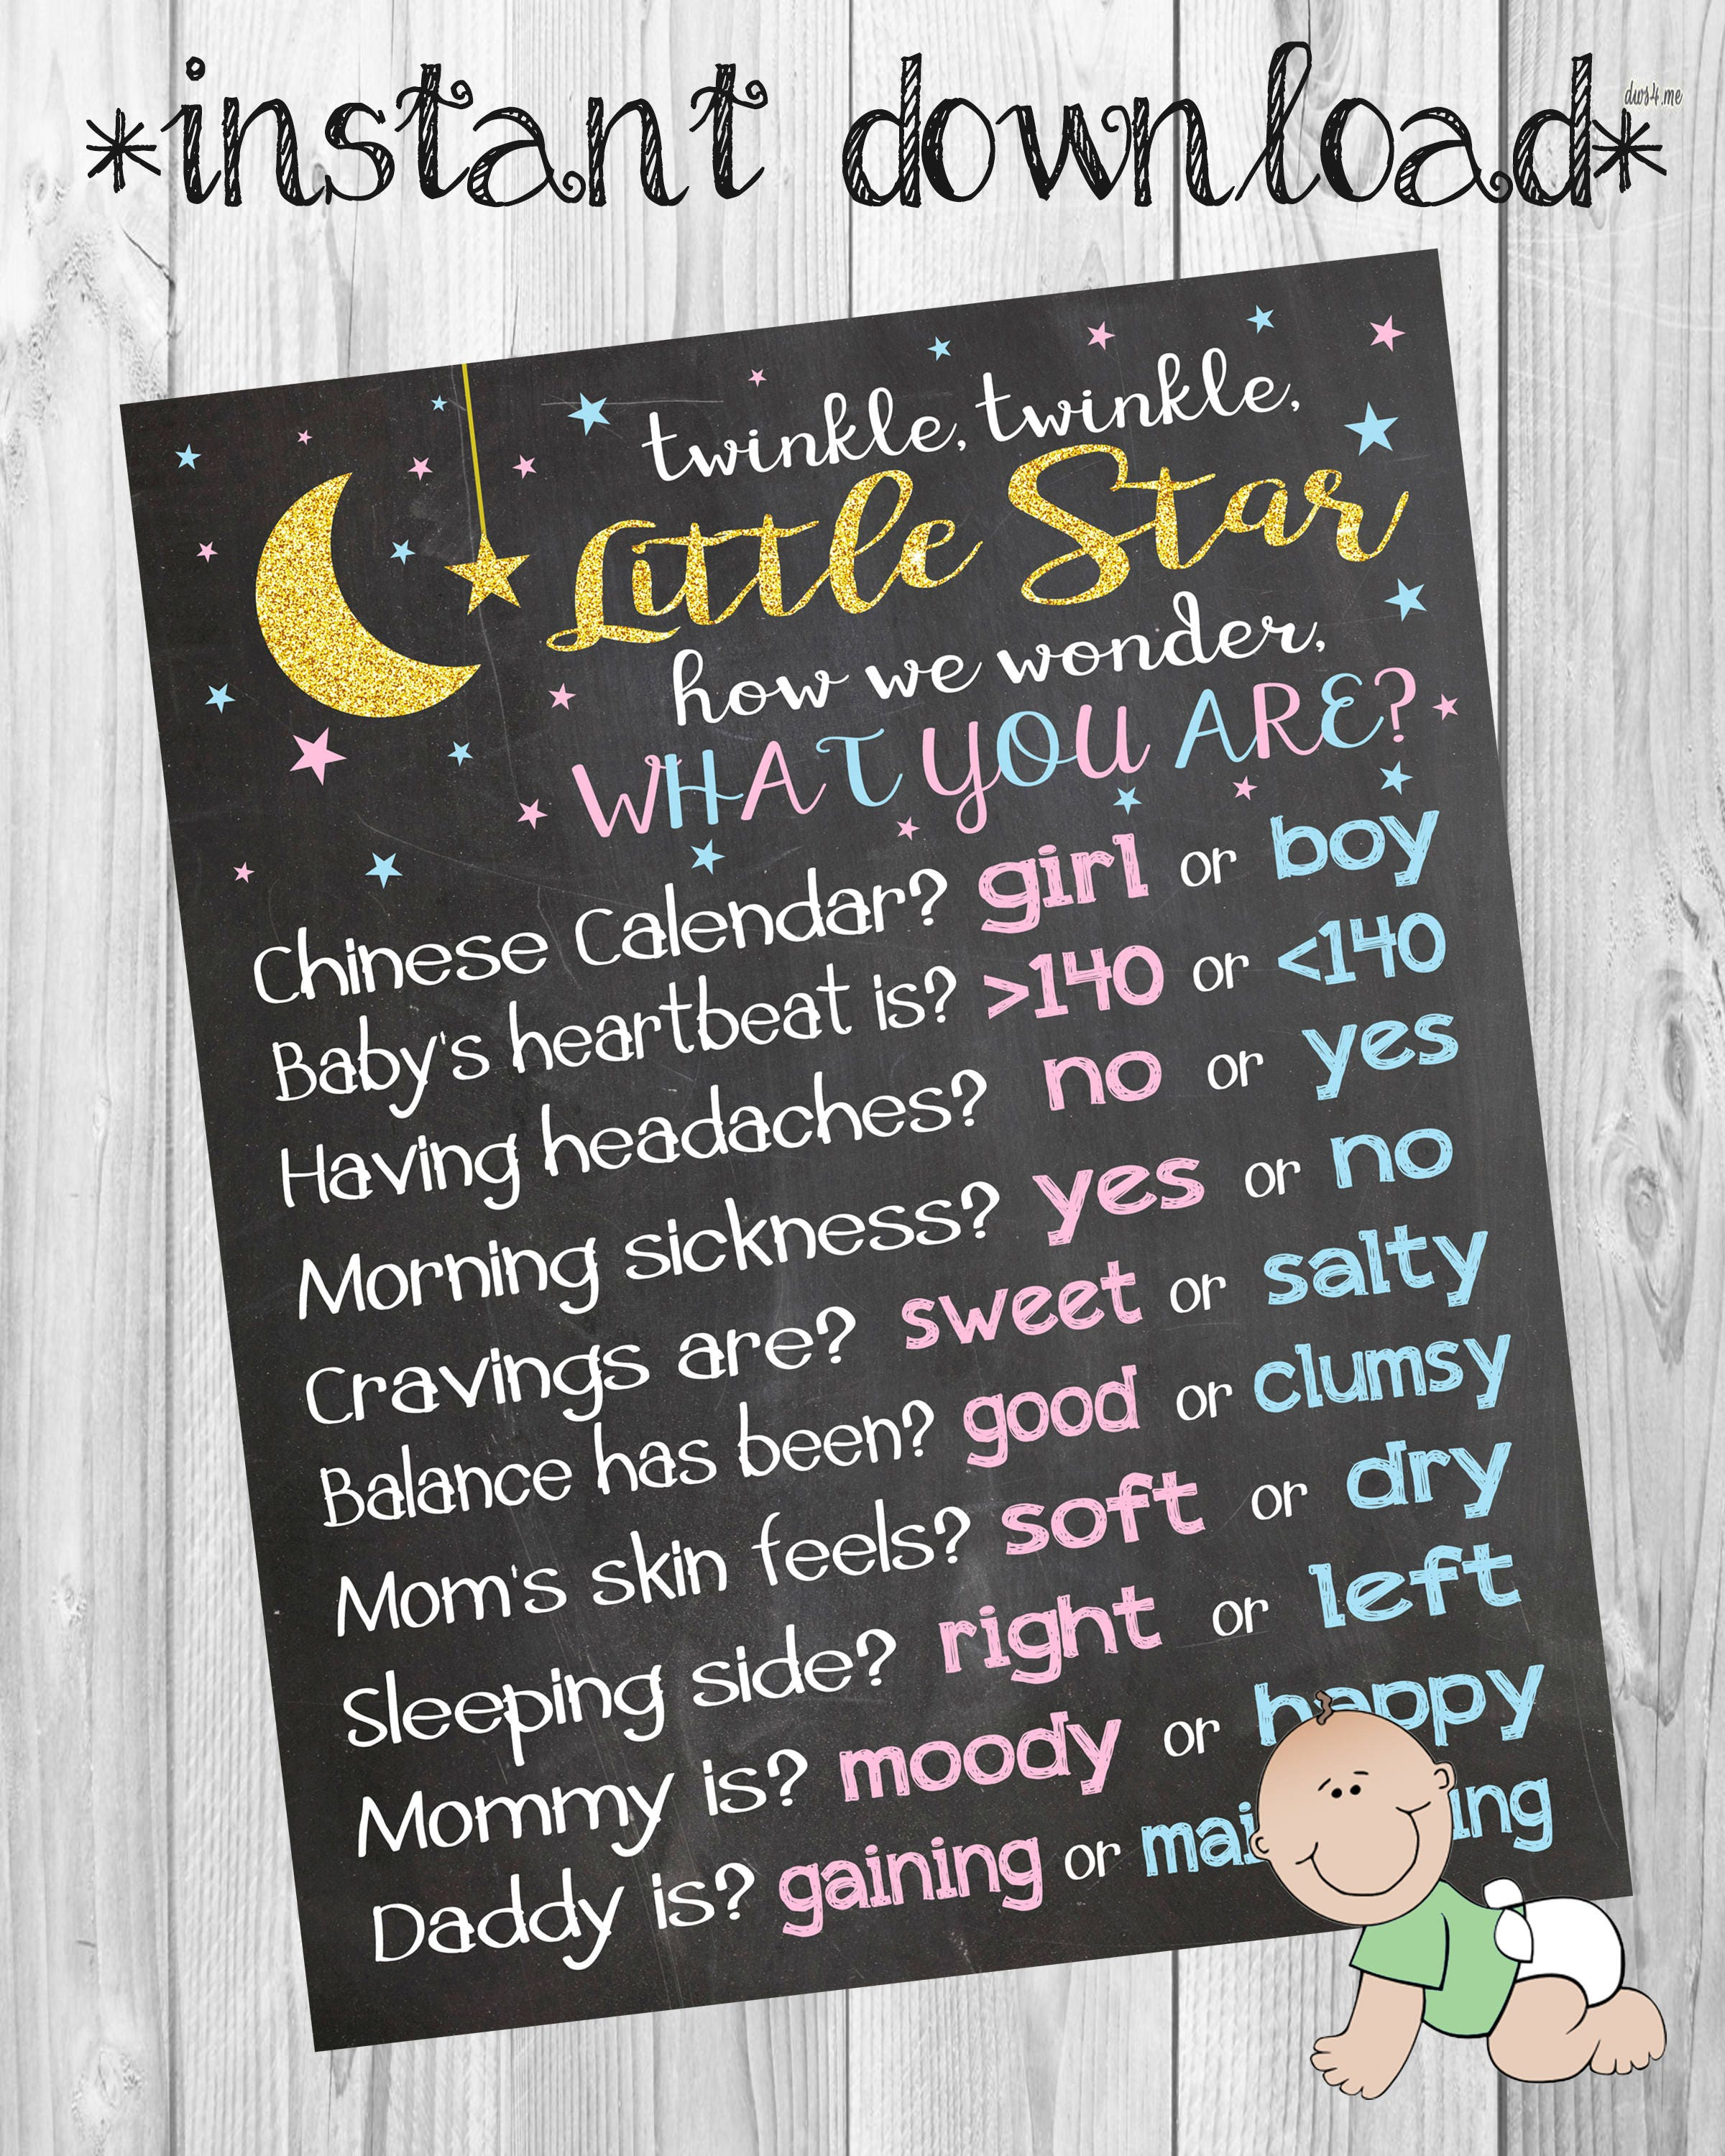 Twinkle Twinkle Little Star Gender Reveal party Chalkboard